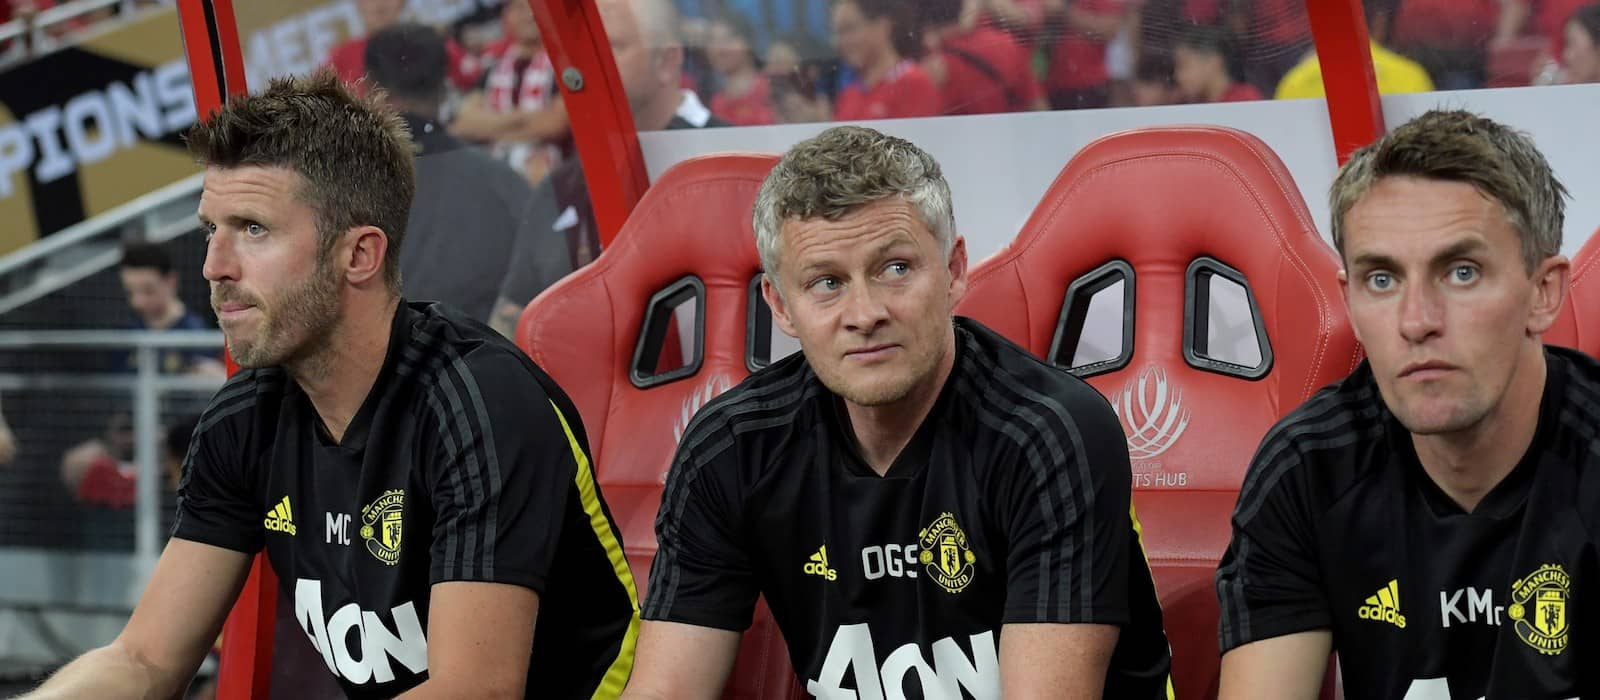 Why some Manchester United players are doubting Ole Gunnar Solskjaer's credentials – report